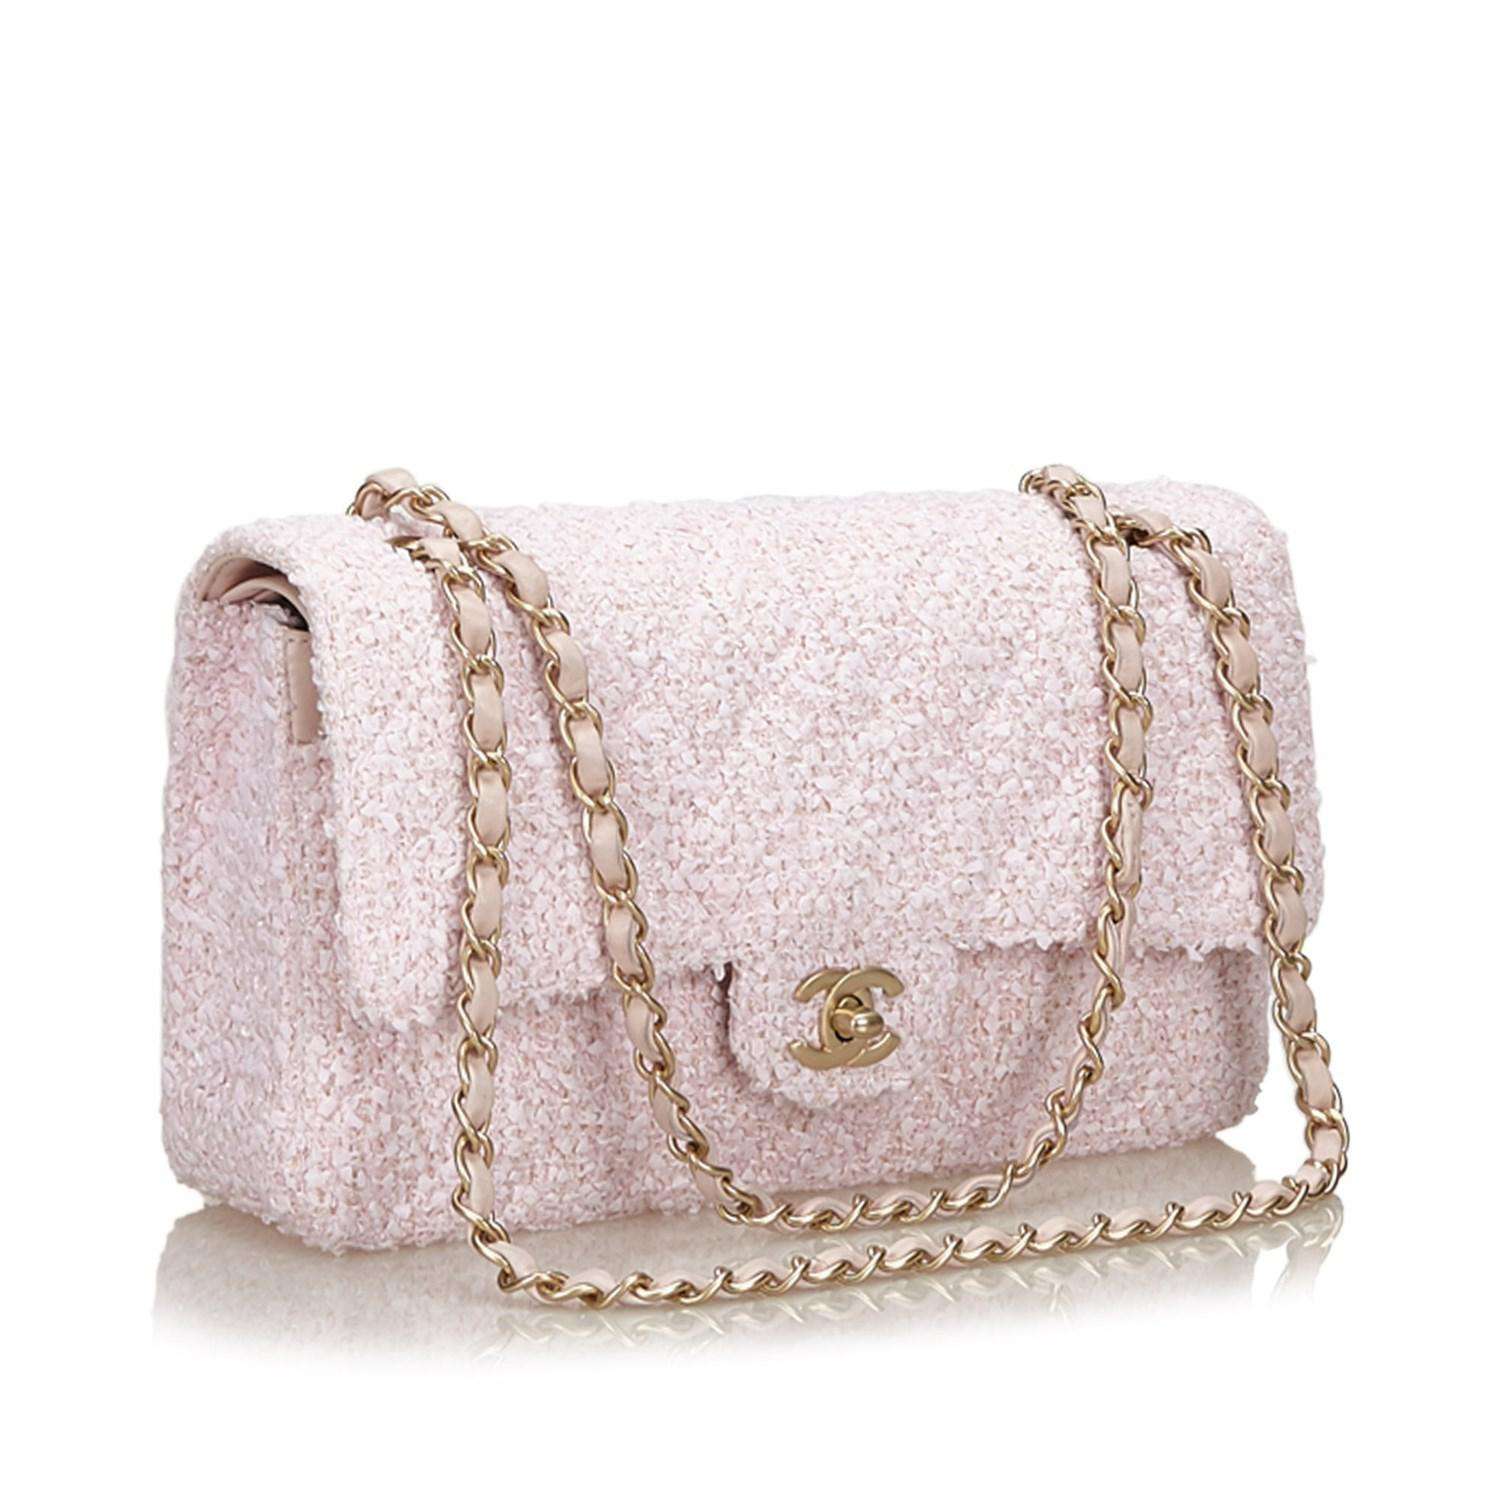 9be23dafb156 Chanel Small Classic Tweed Double Flap Bag in Pink - Lyst